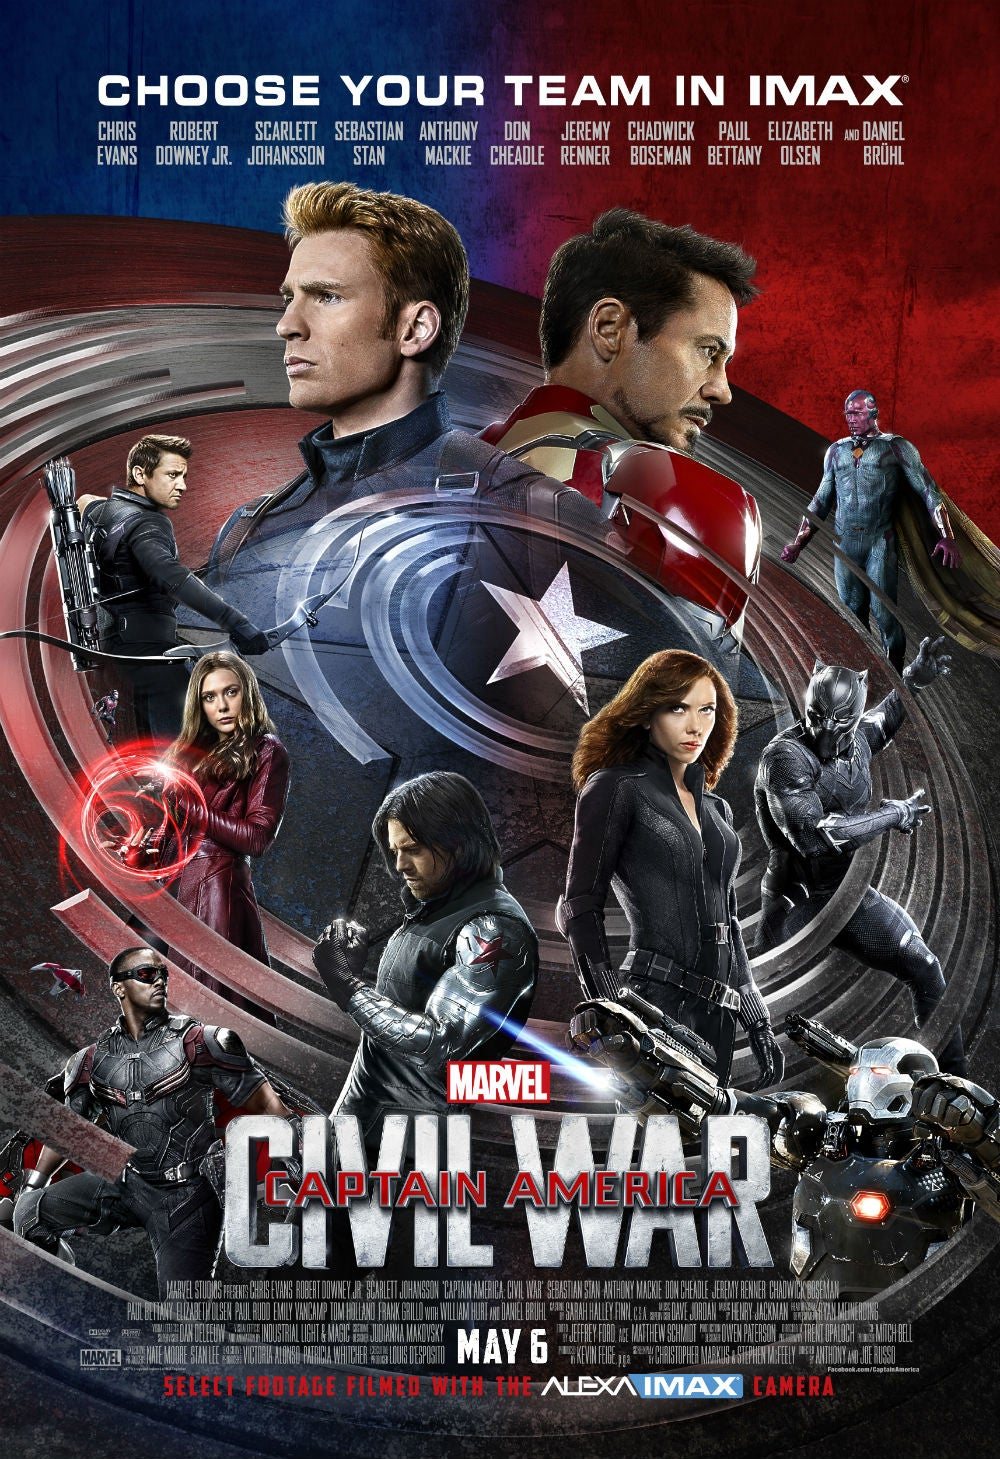 Choose a Side With This Exclusive Captain America: Civil War IMAX Poster